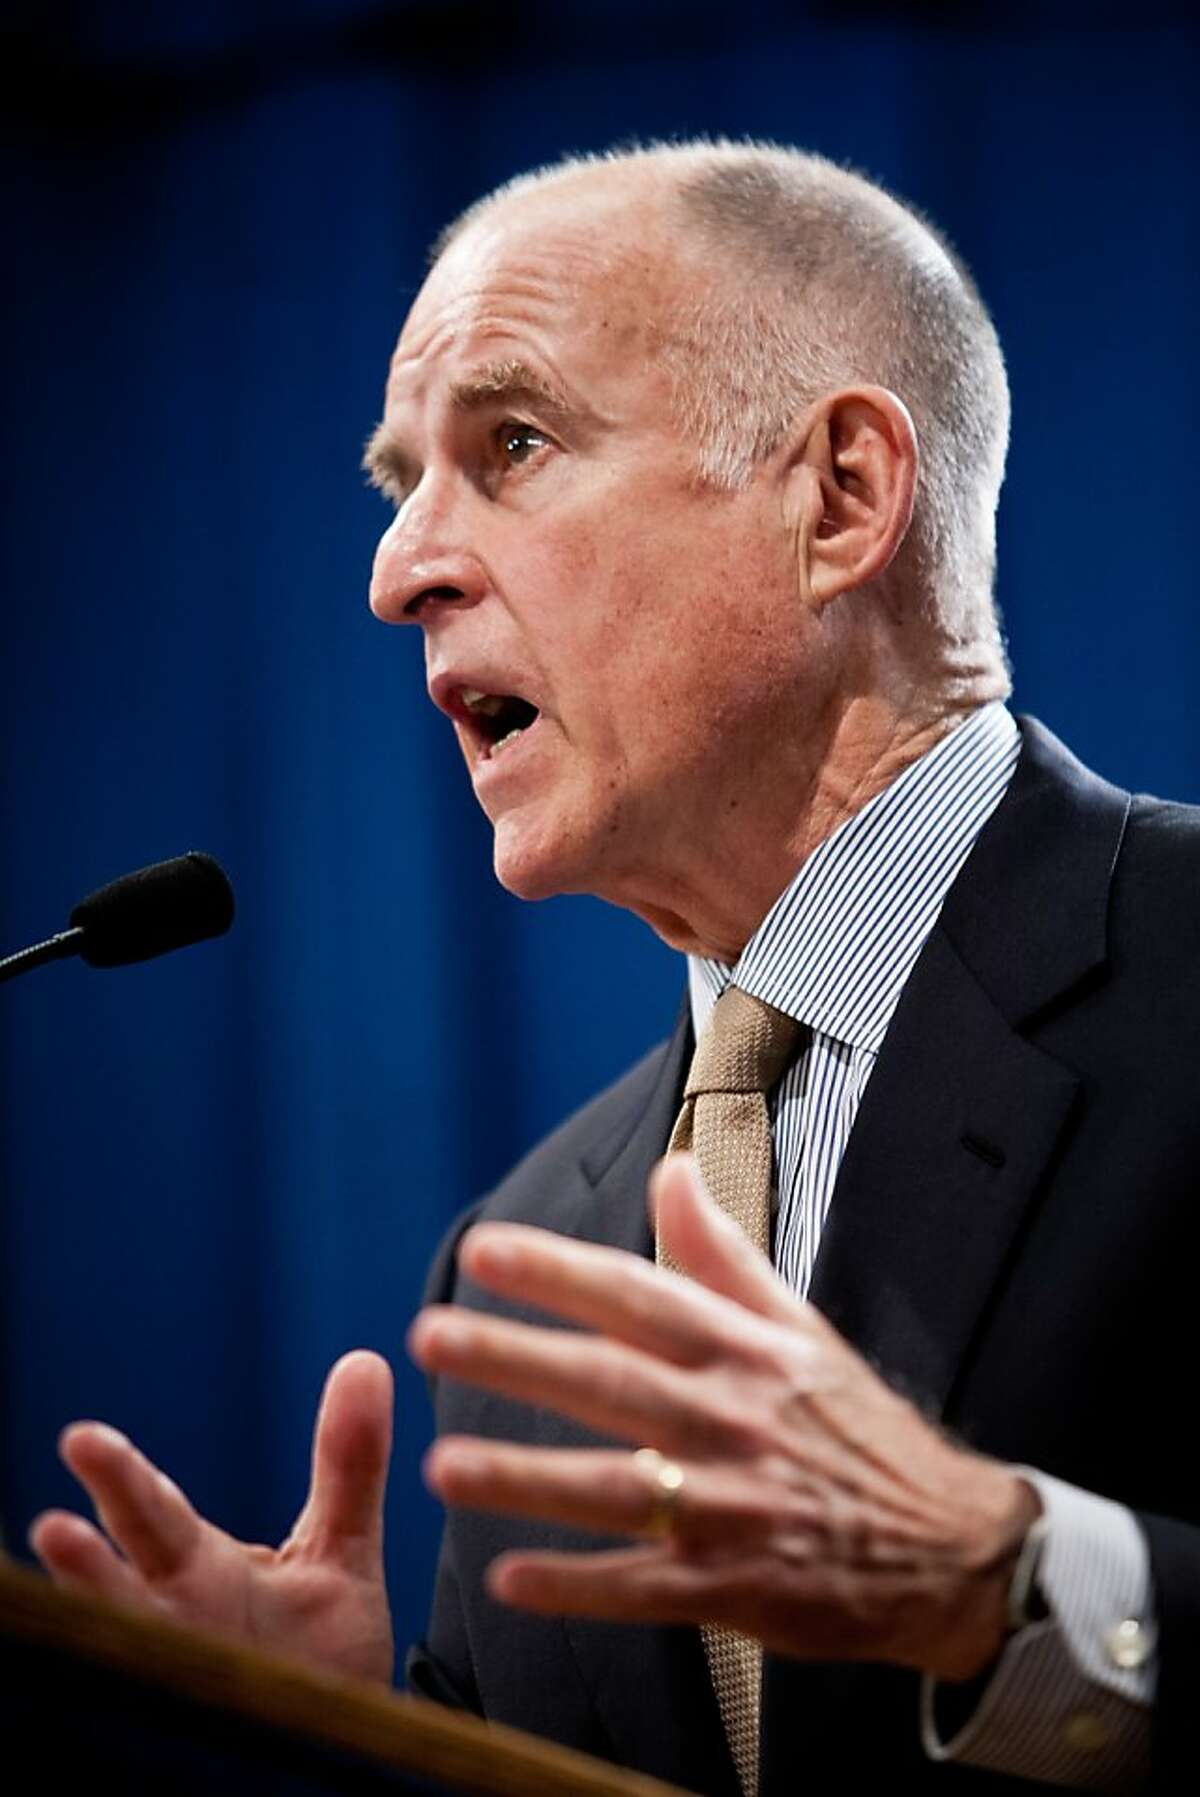 California Governor Jerry Brown announces his revised state budget, cutting an additional $8.3 billion in an effort to close the $15.7 billion deficit at the State Capitol in Sacramento, Calif., May 14, 2012.